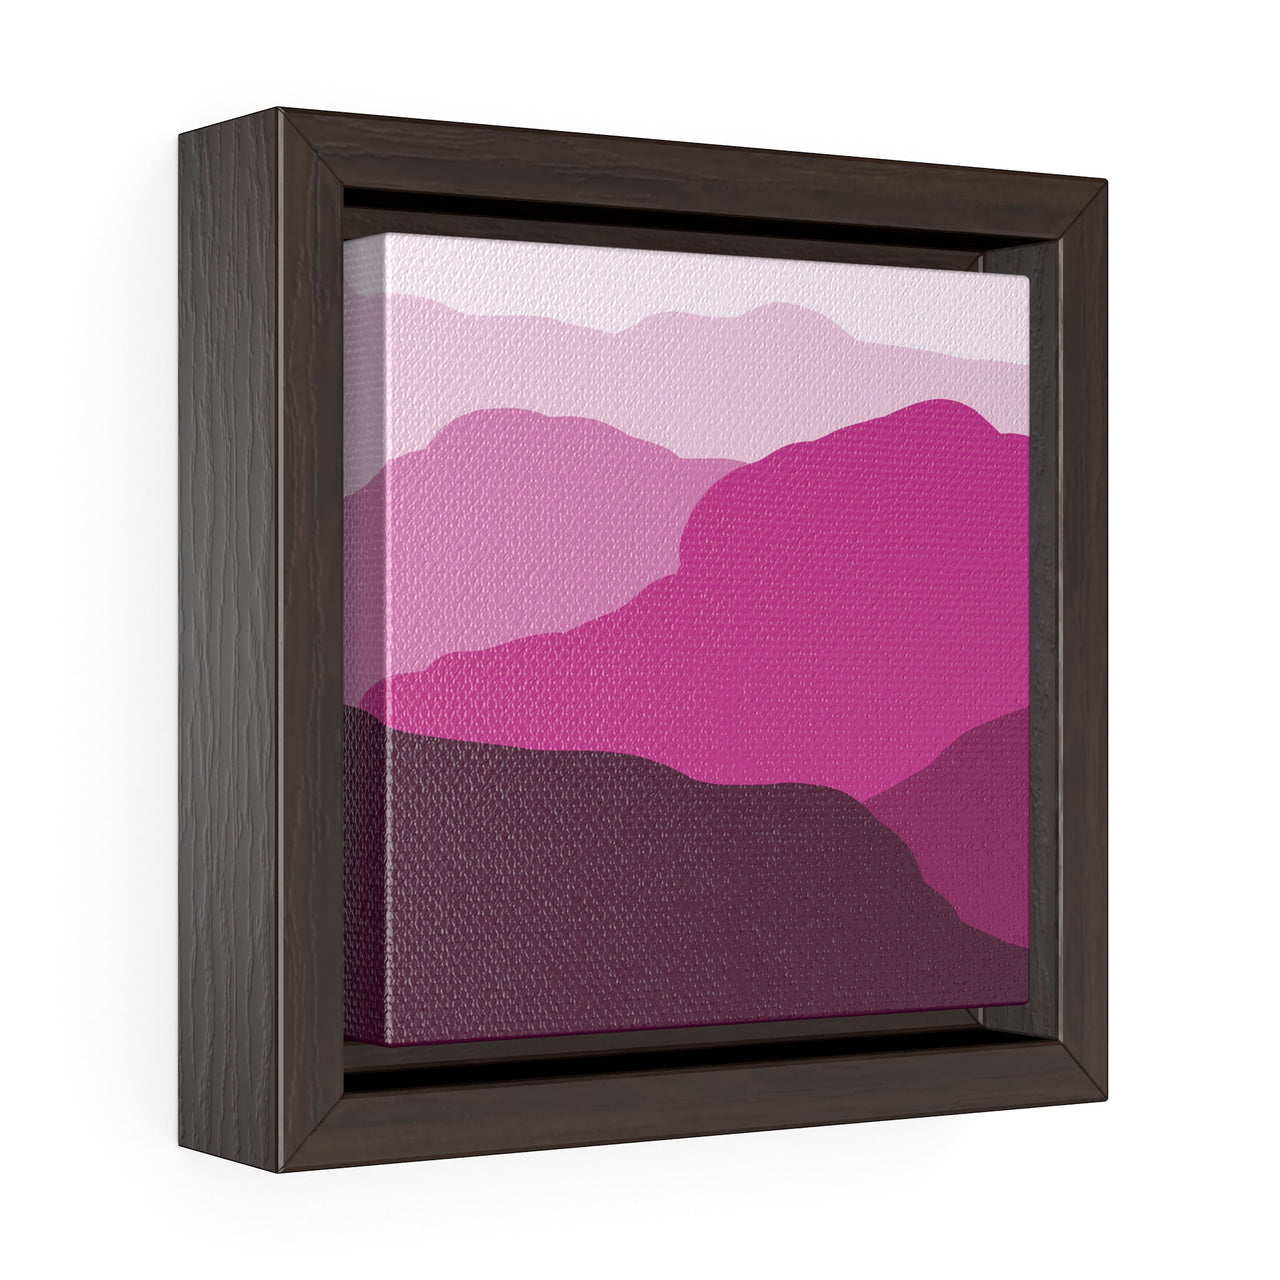 Canvas Wall Print - Red Mountains - Square Framed Premium Gallery Wrap Canvas - Falling Leaf Card Co.